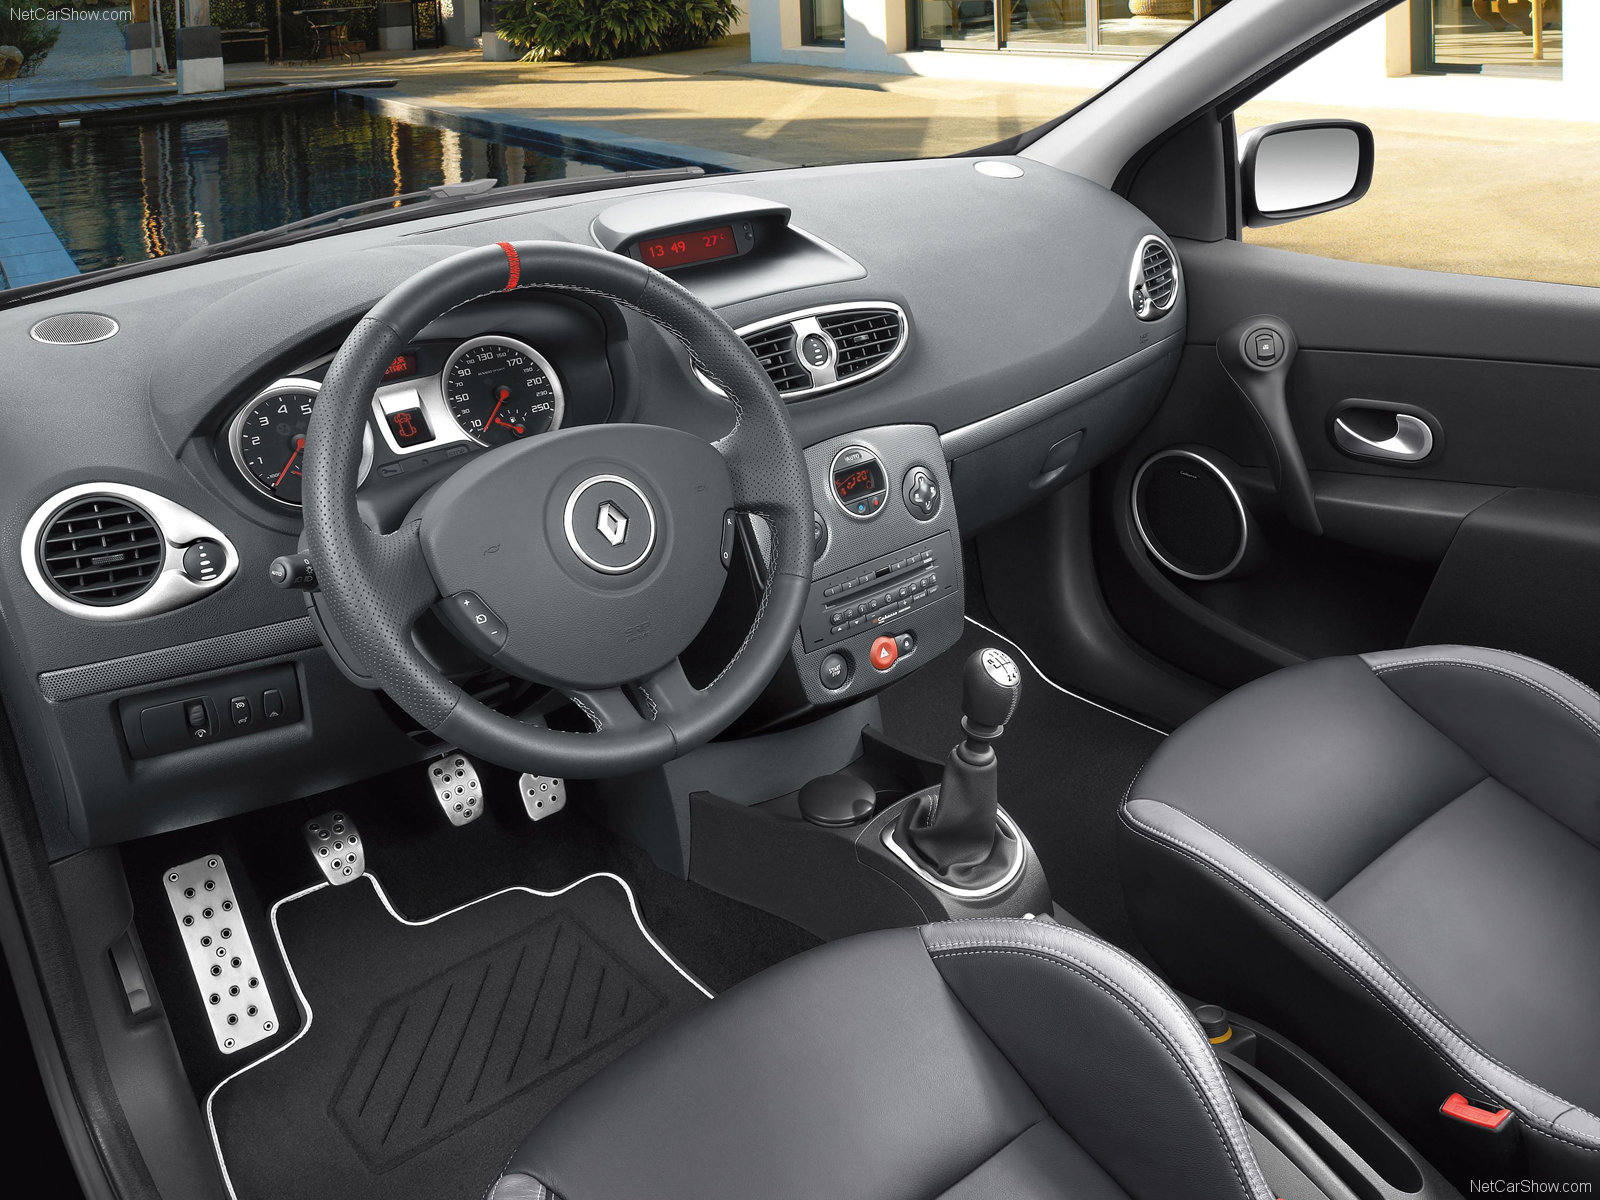 3dtuning Of Renault Clio 3 Door Hatchback 2008 3dtuning